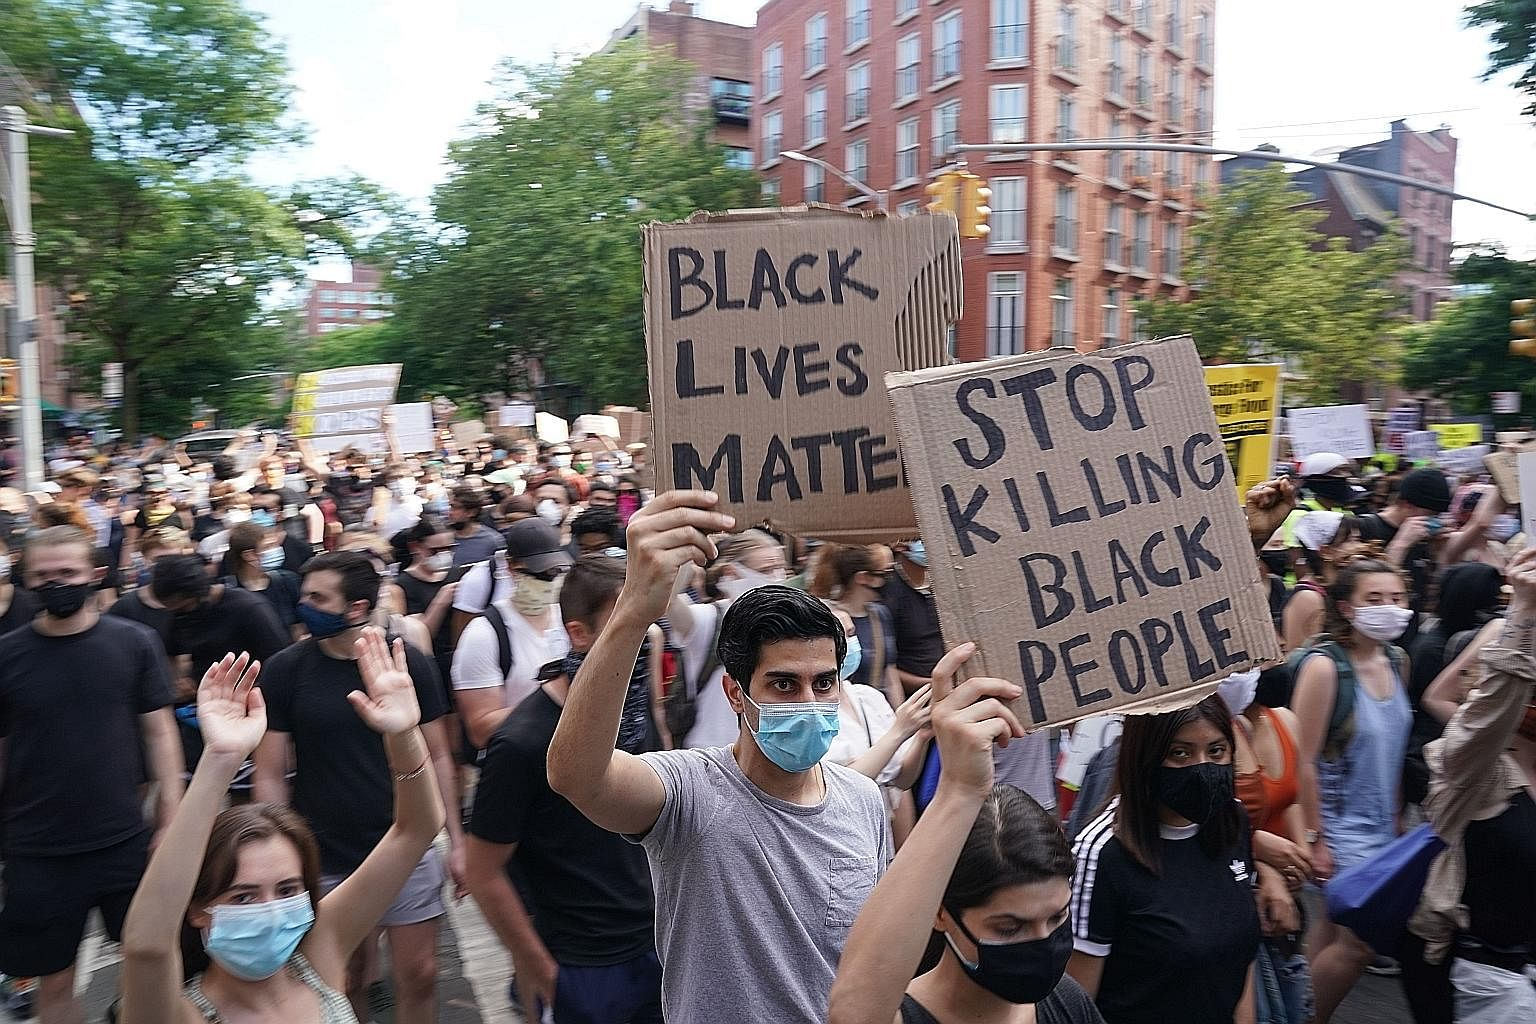 Demonstrators marching in New York City on Saturday as protests continued across the United States over the death of Mr George Floyd in Minneapolis, Minnesota. The African-American man was shown on video pleading that he could not breathe as a white